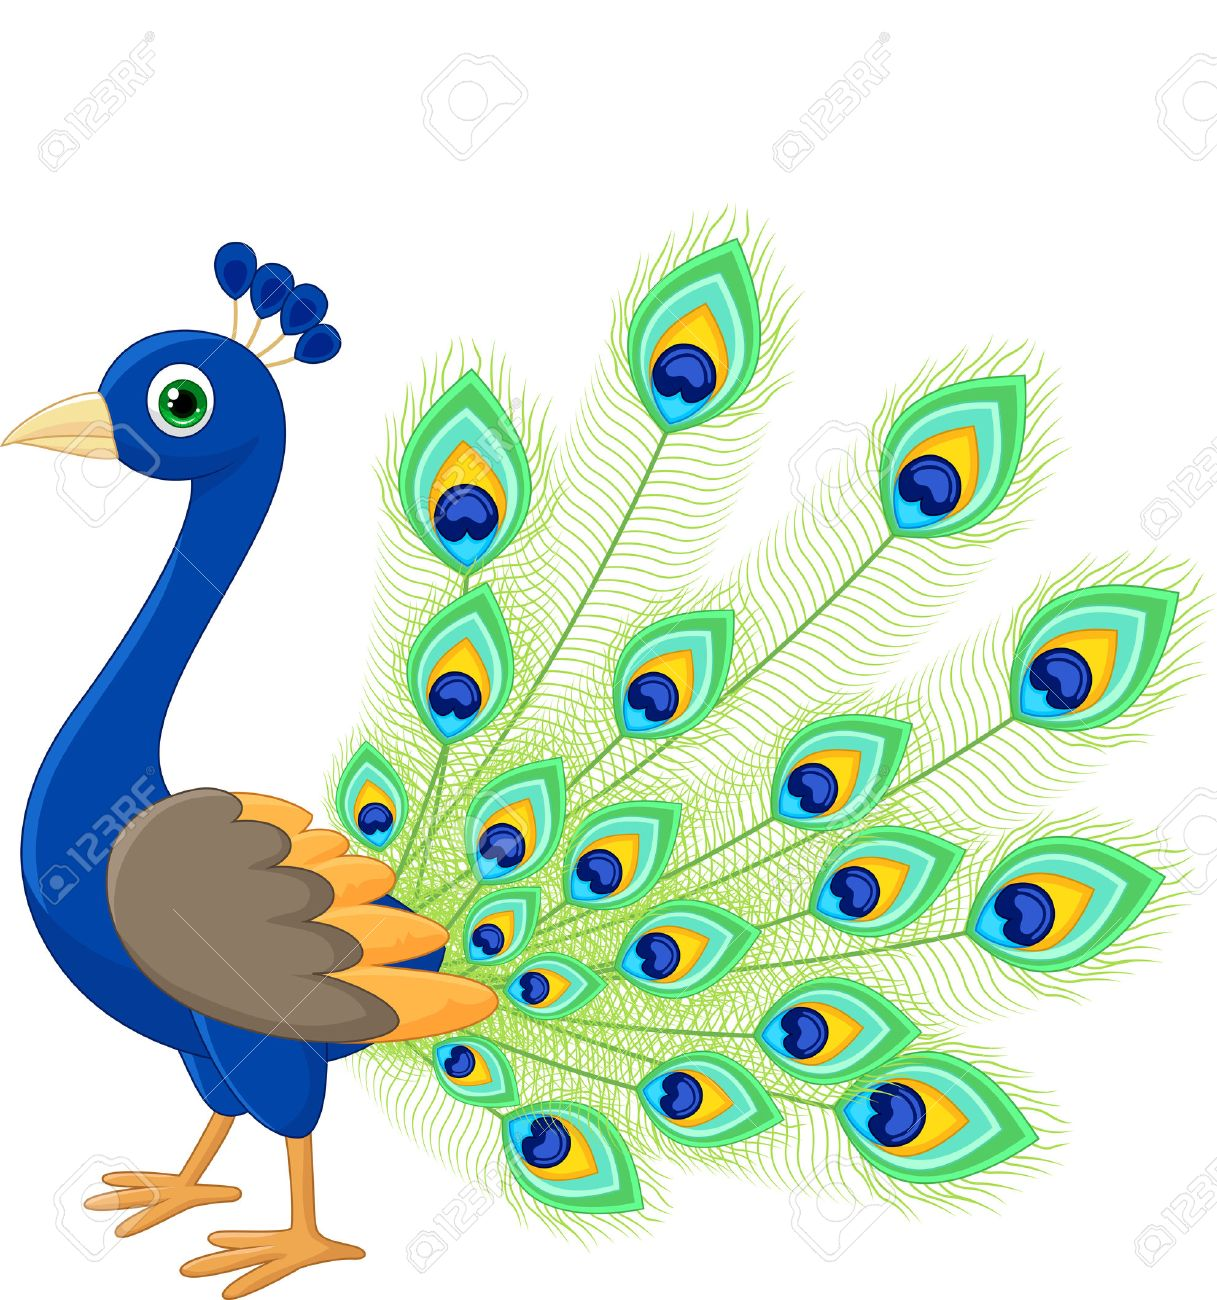 peacock cartoon royalty free cliparts vectors and stock rh 123rf com peacock clipart black and white peacock clip art for invitations